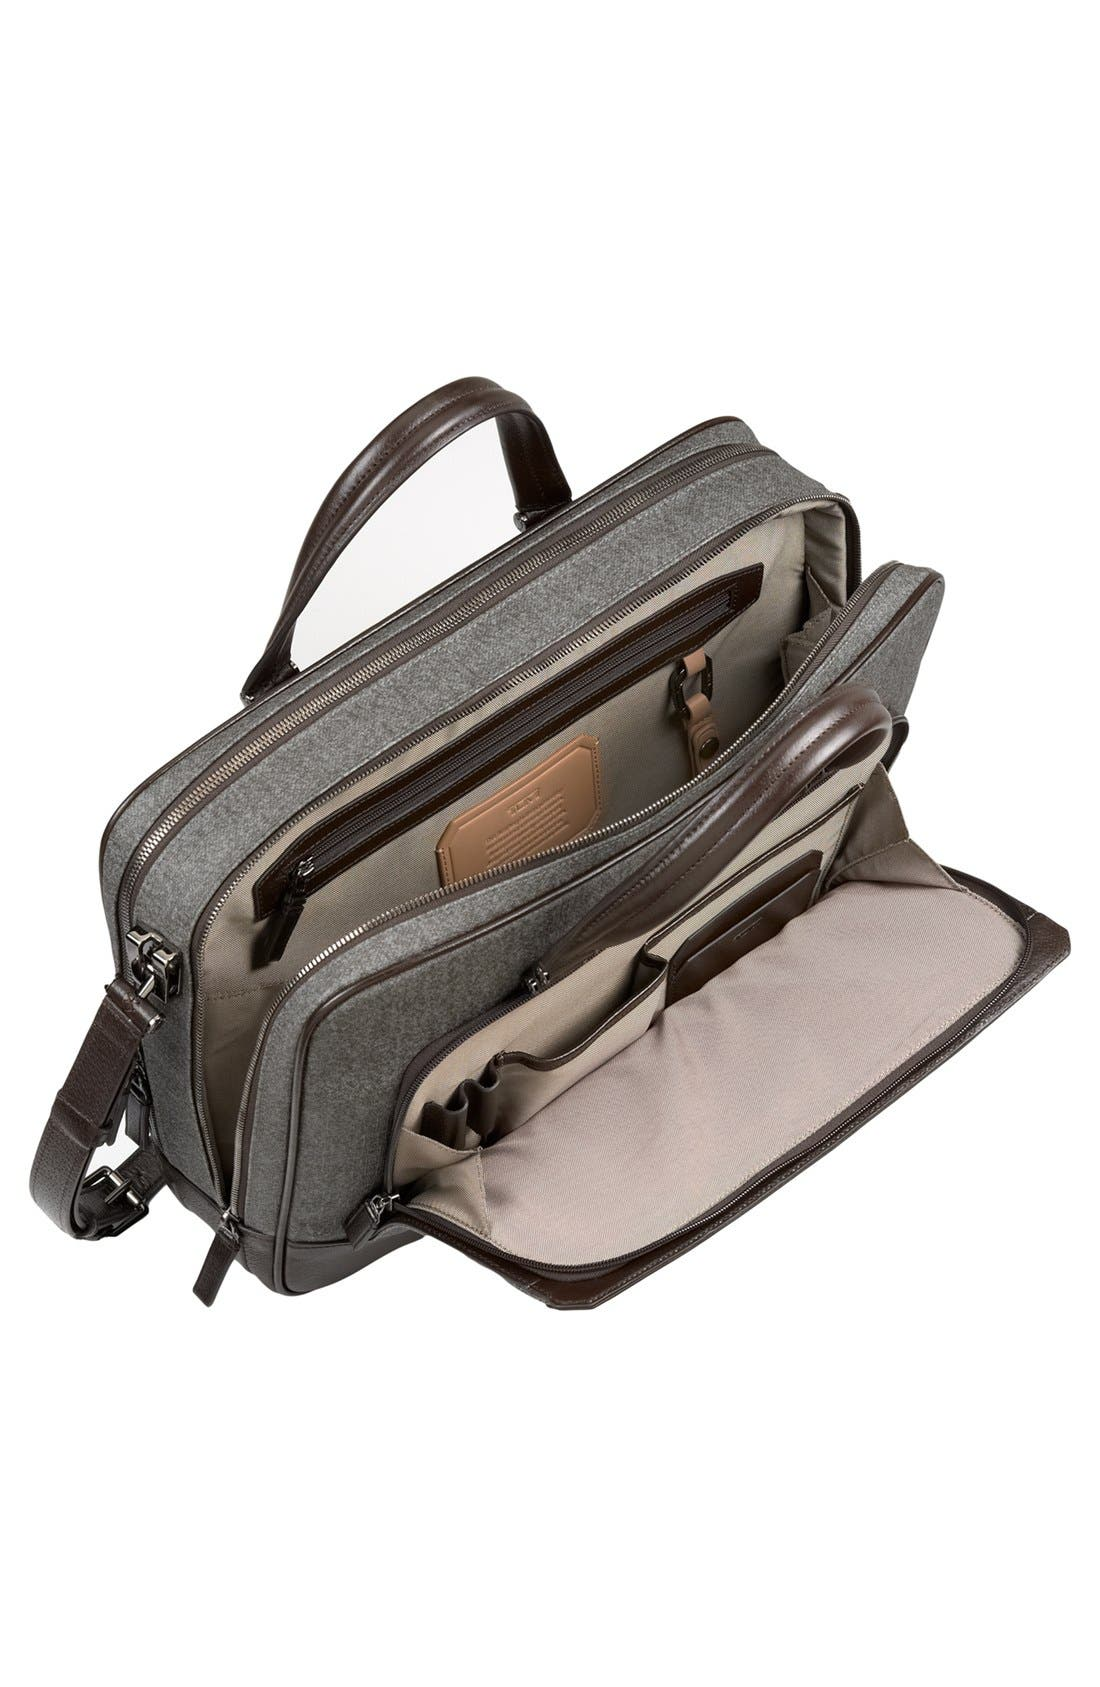 'Astor Ansonia' Zip Top Coated Canvas Laptop Briefcase,                             Alternate thumbnail 4, color,                             068